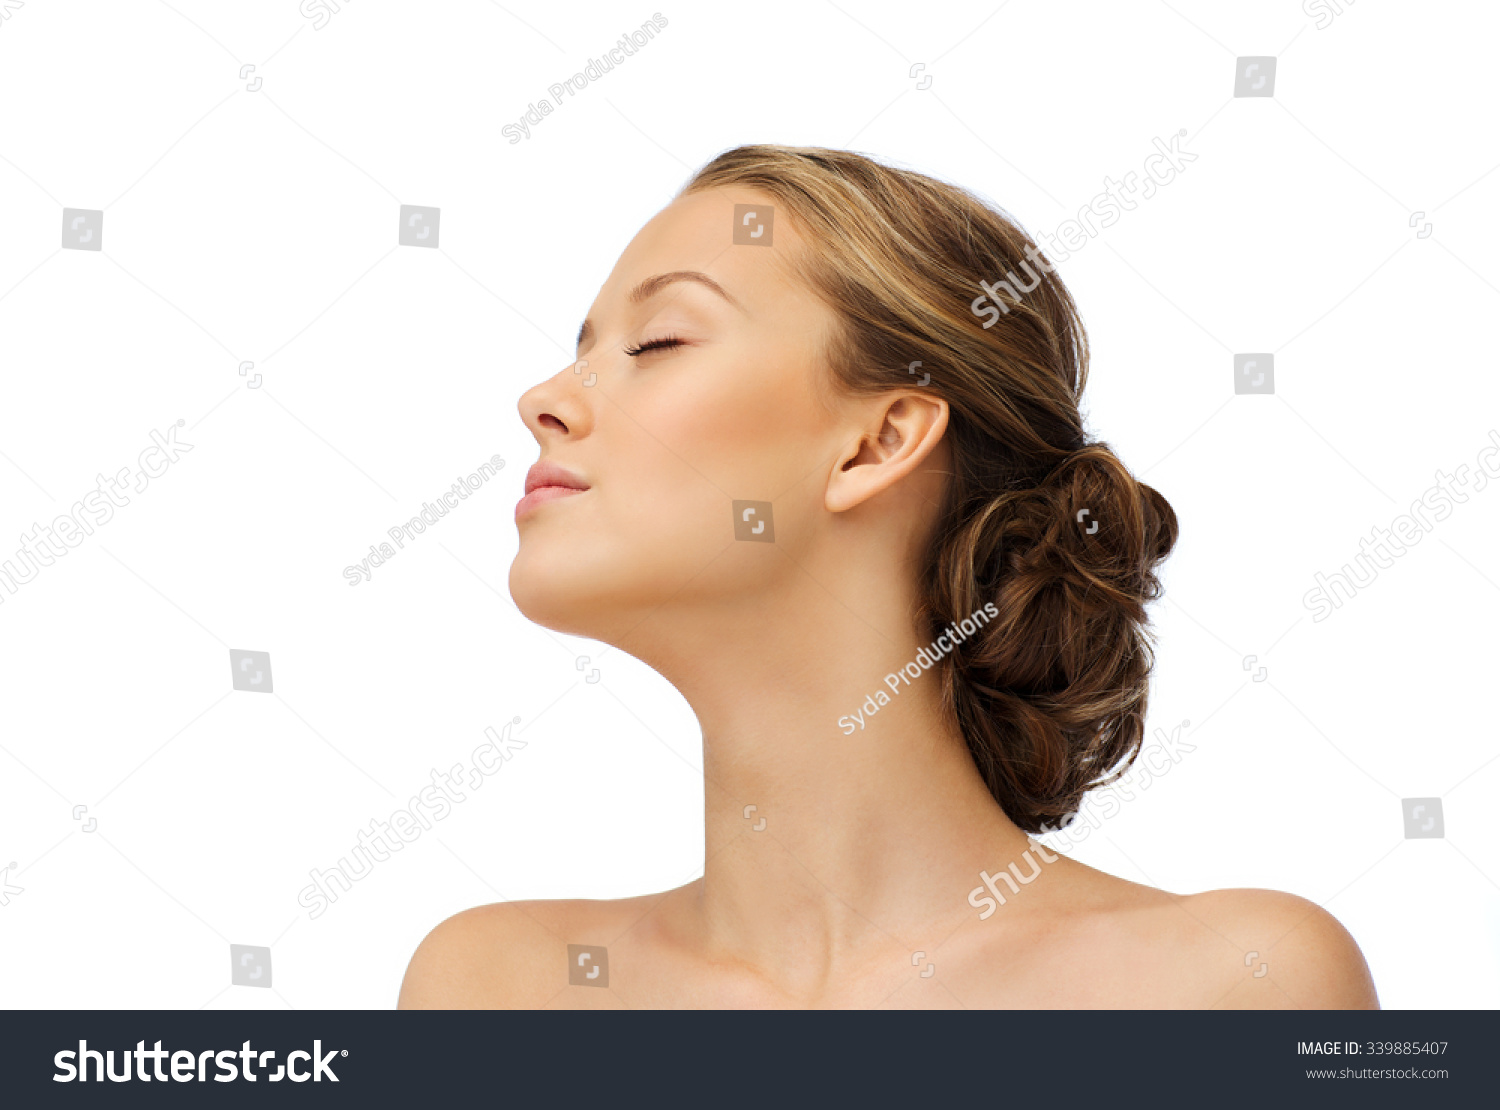 Beauty People Health Concept Young Woman Stock Photo ...